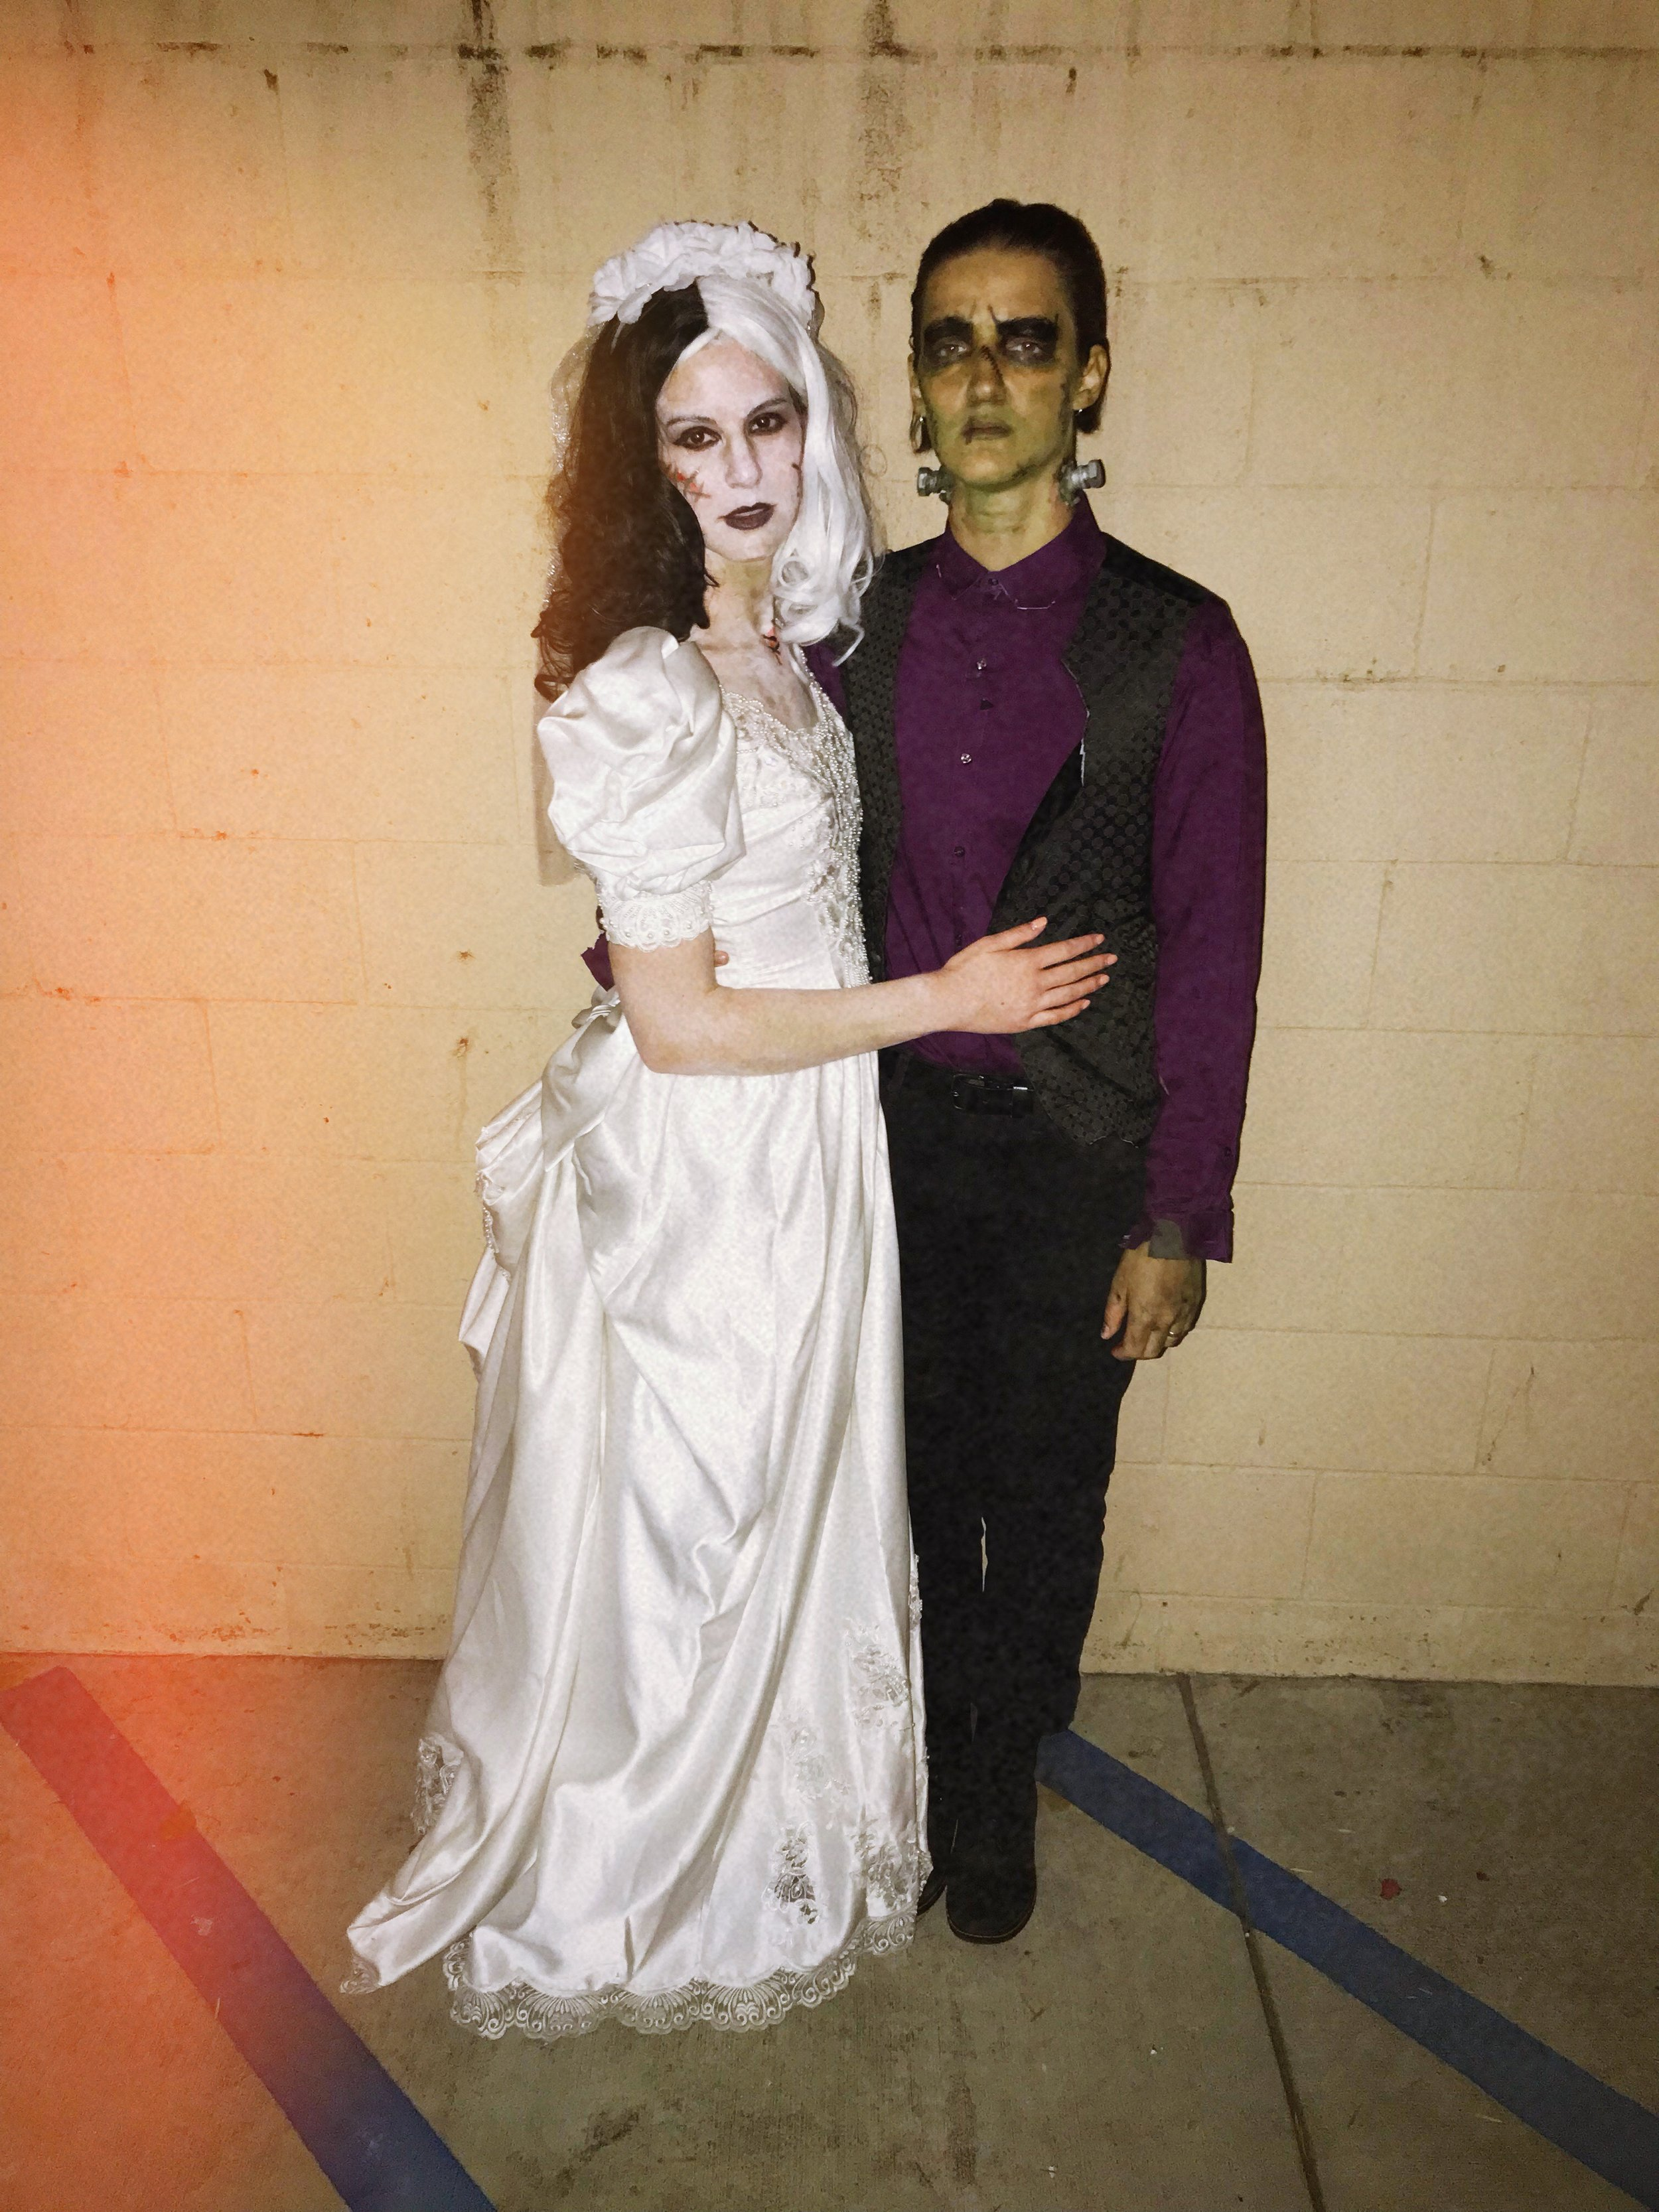 And for a friend's party, Grace and I went as Frankenstein and Bride of Frankenstein (perfect newlywed costume, I think!)